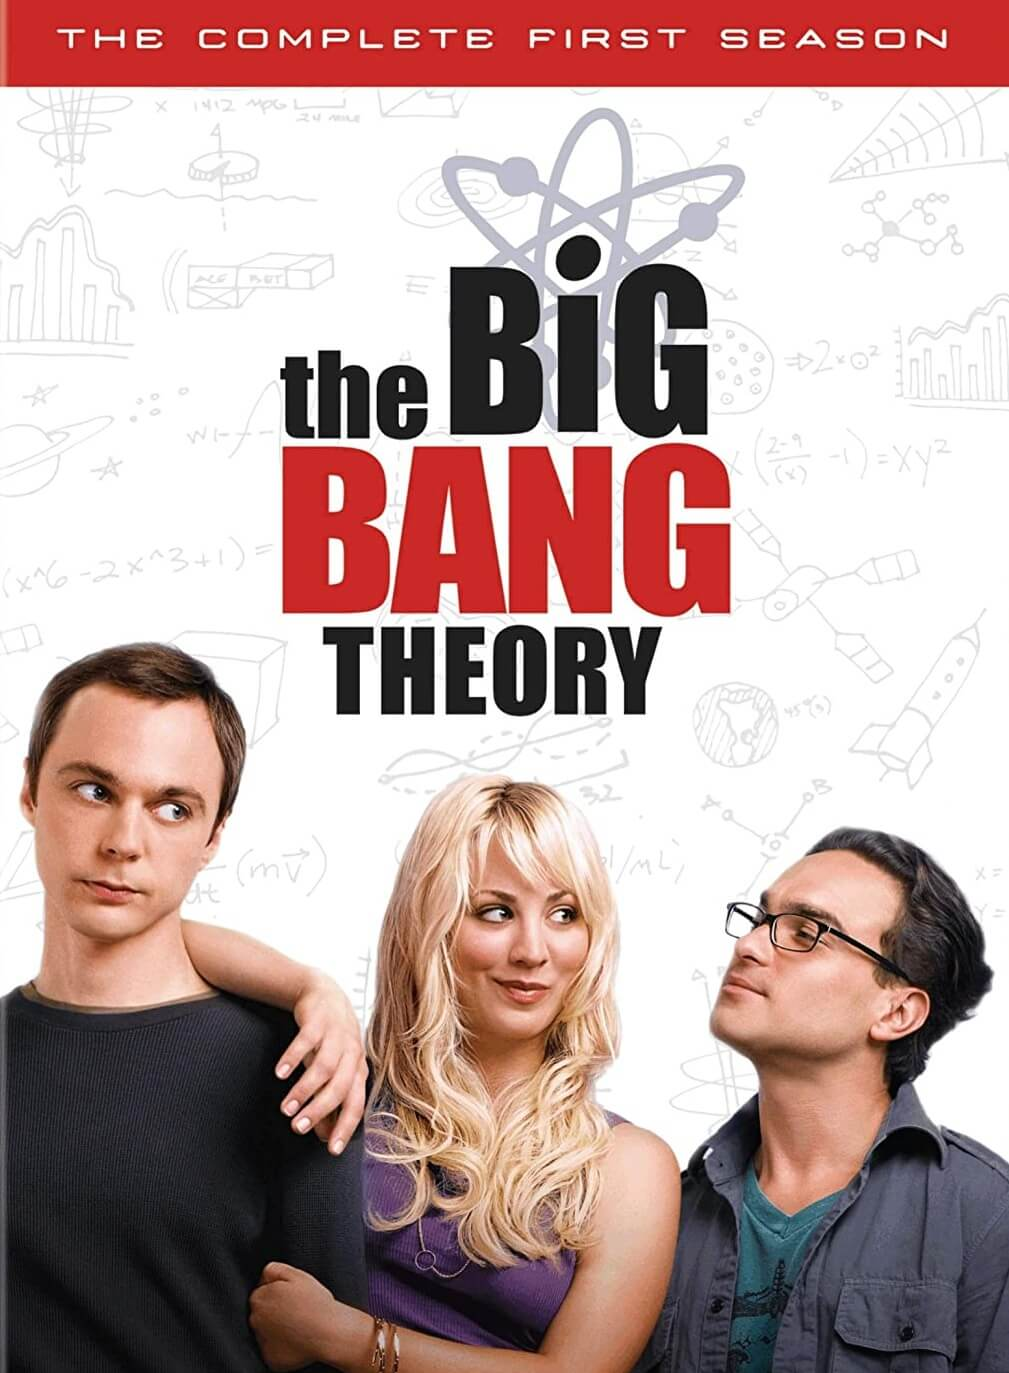 The Big Bang Theory S01 E12